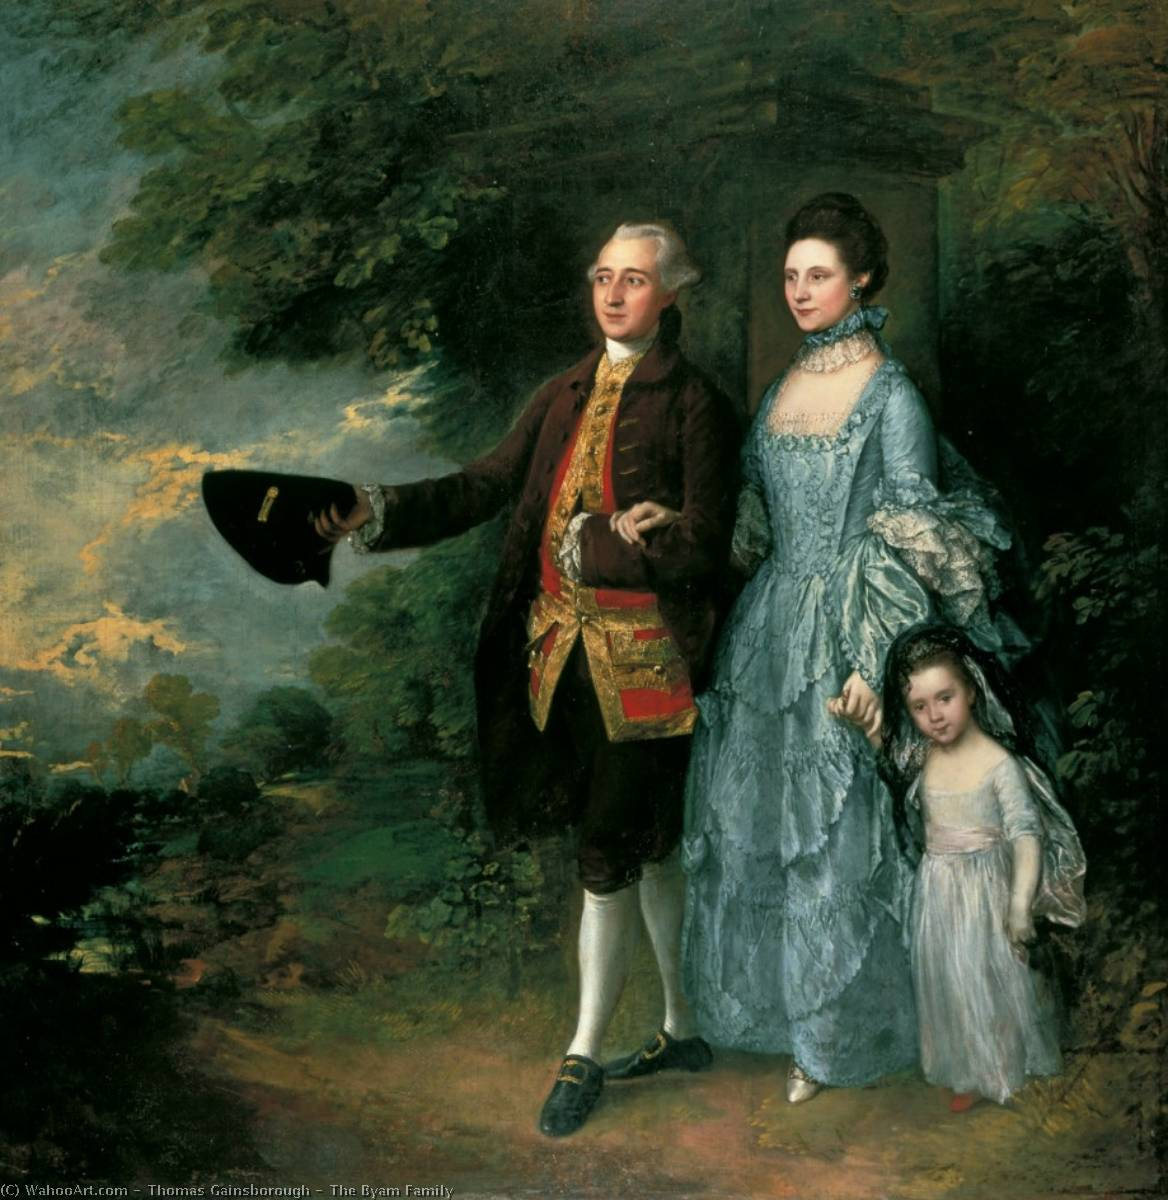 the byam Famille, 1766 de Thomas Gainsborough (1727-1788, United Kingdom) | Copie Tableau | WahooArt.com